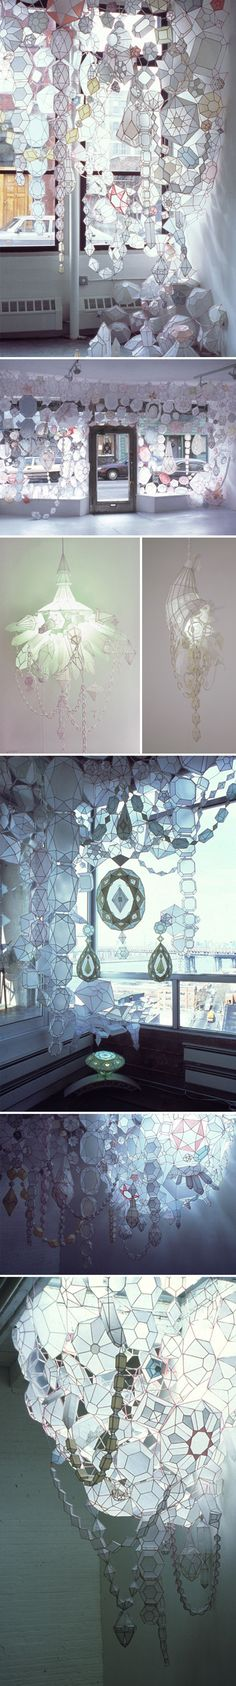 Amazing paper-jewels installation